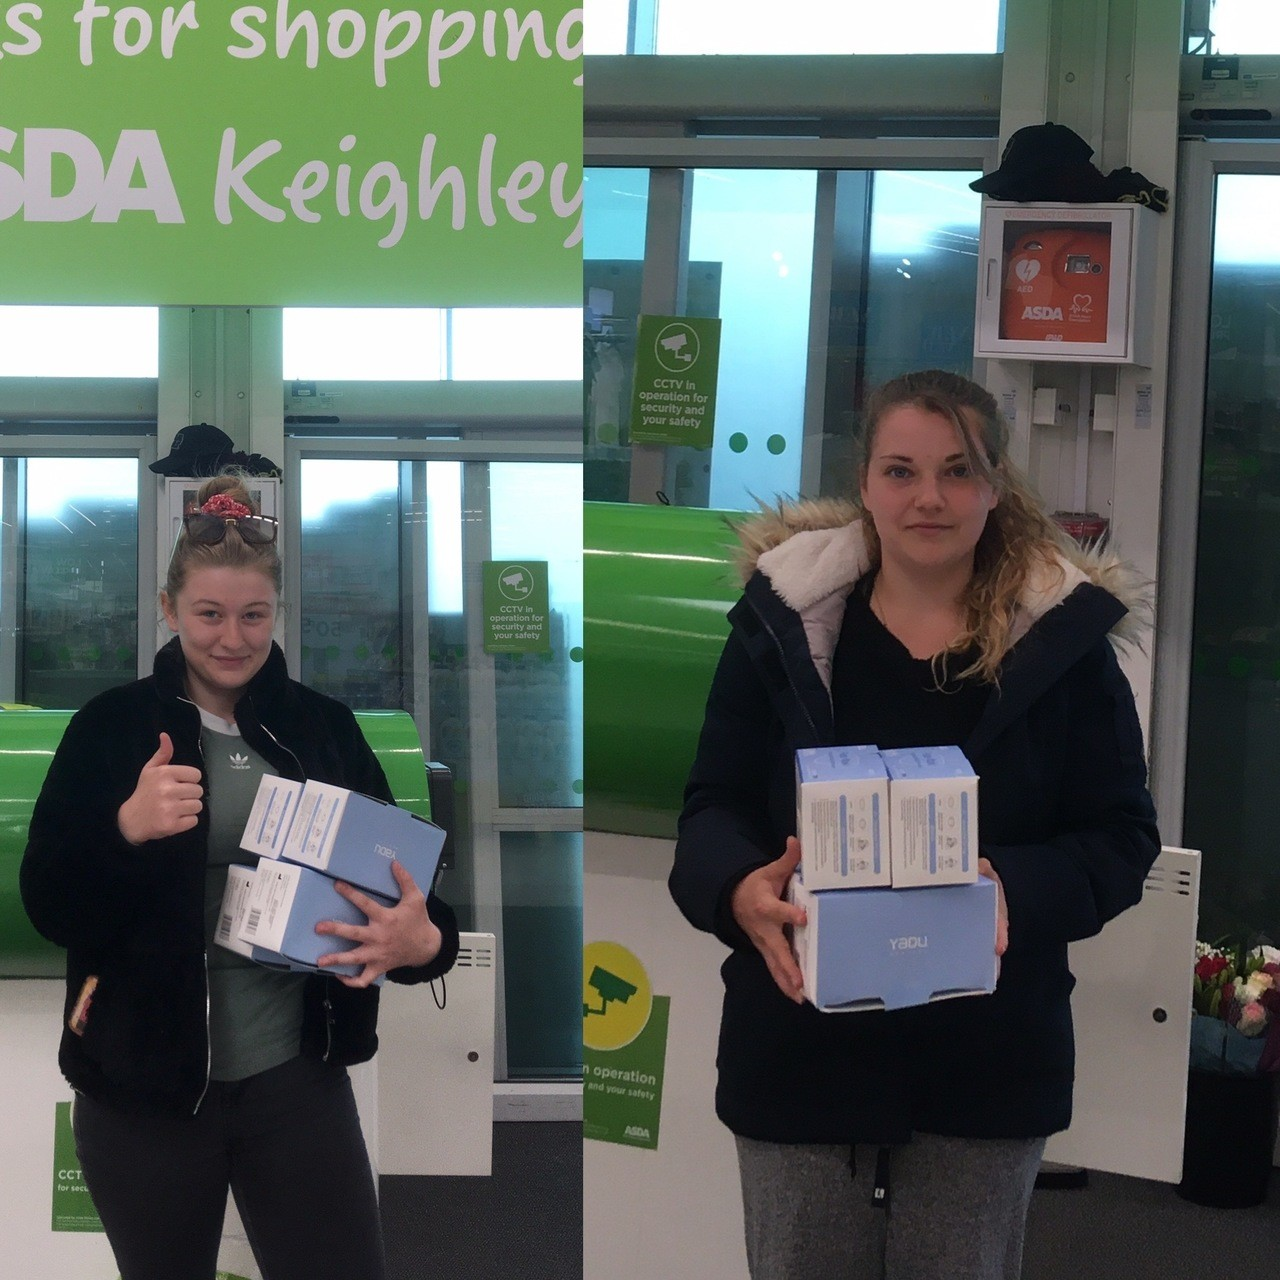 Care homes collect masks | Asda Keighley